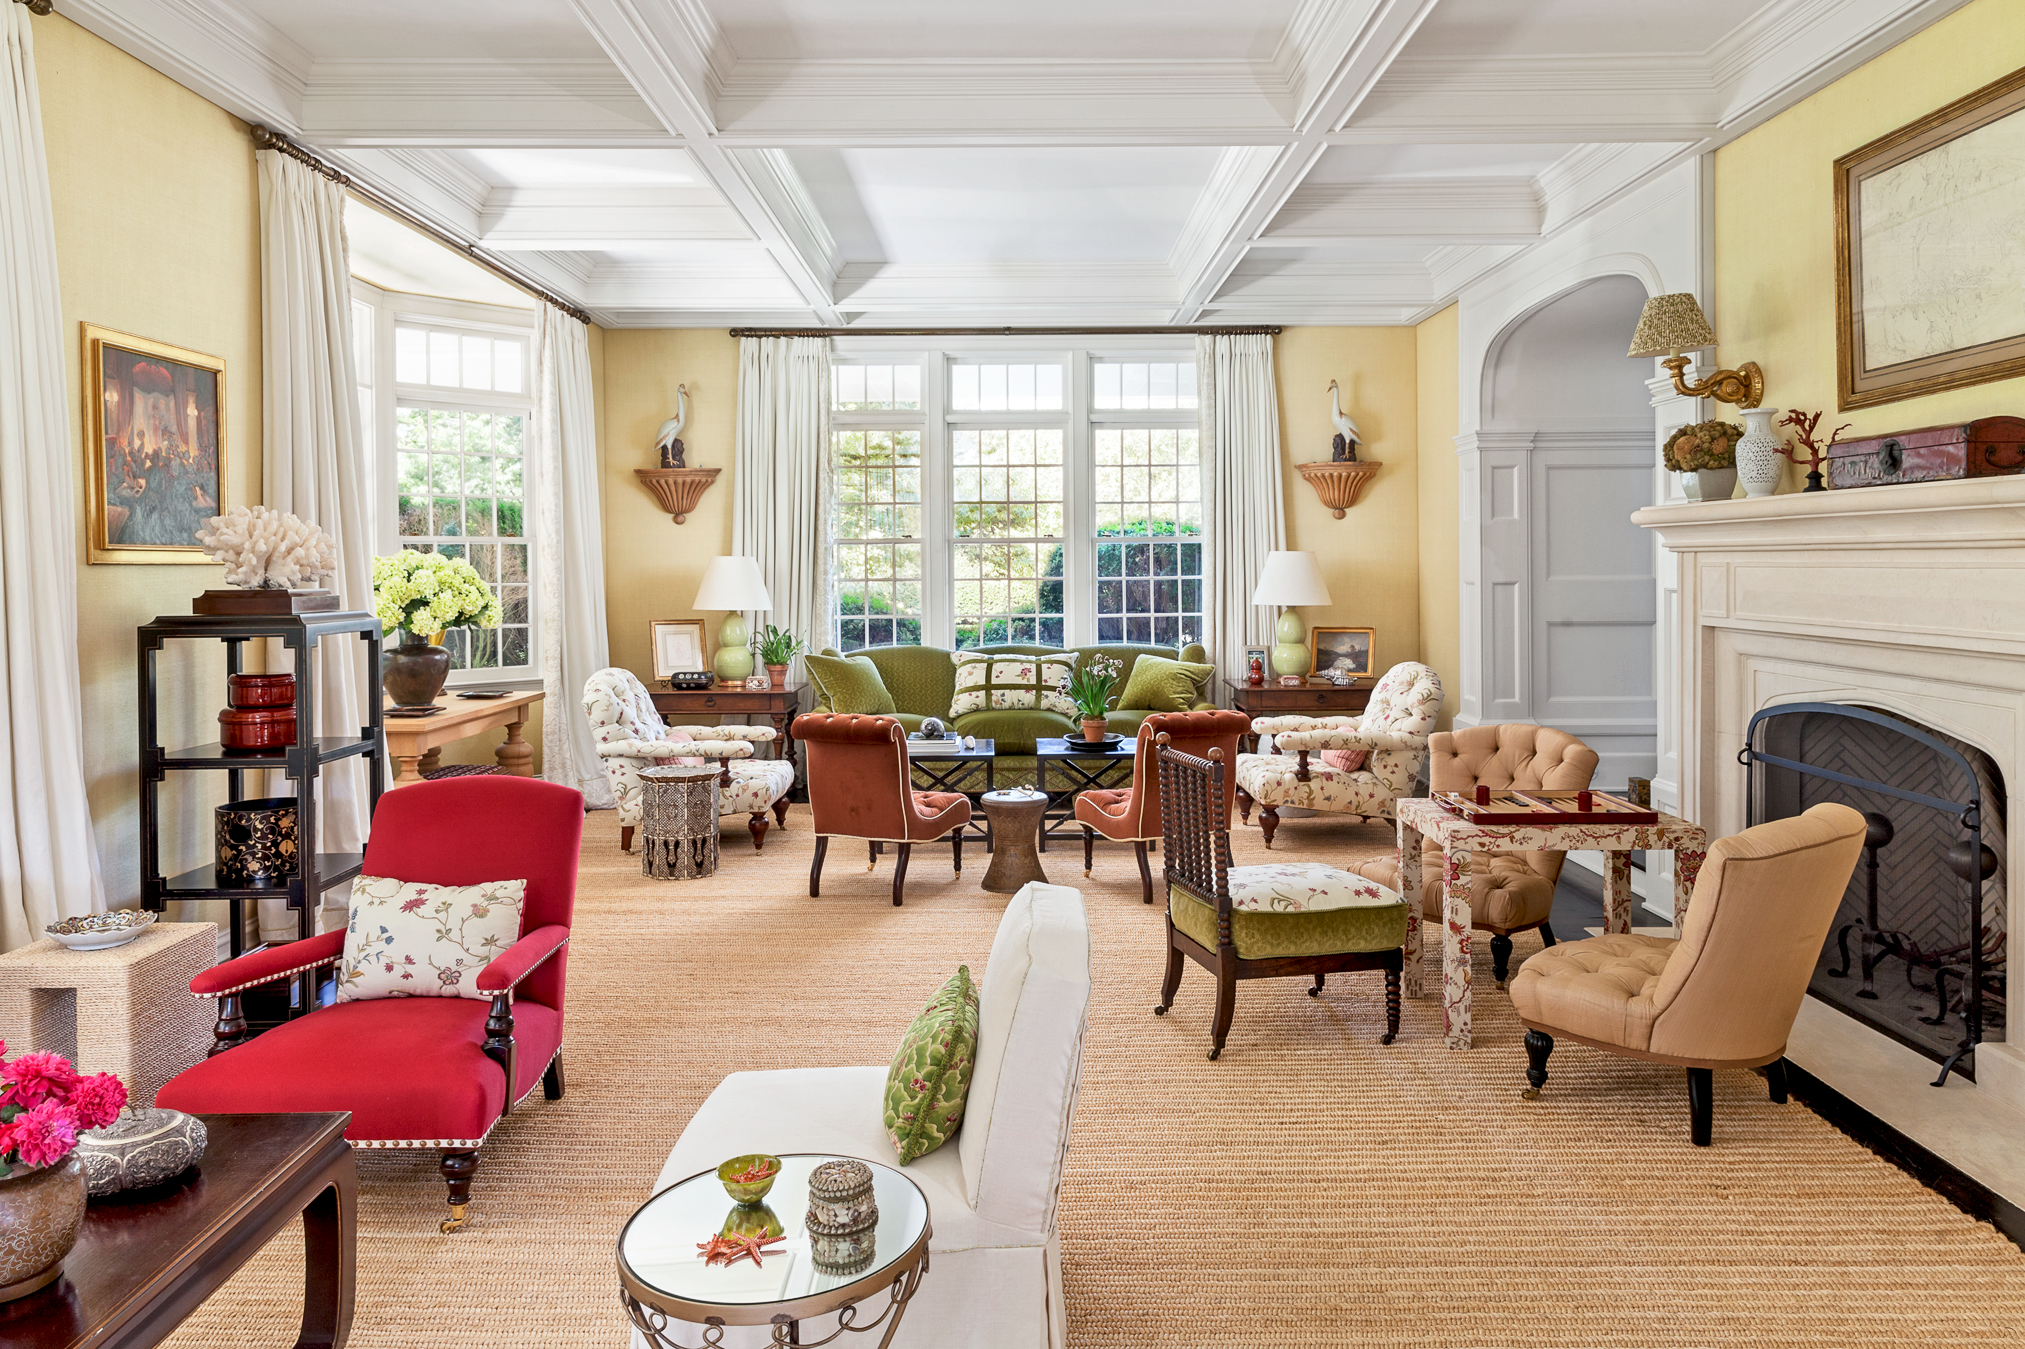 The Roaring Return of the Parlor: How Its Convivial Ideals Inspired Modern Living Rooms